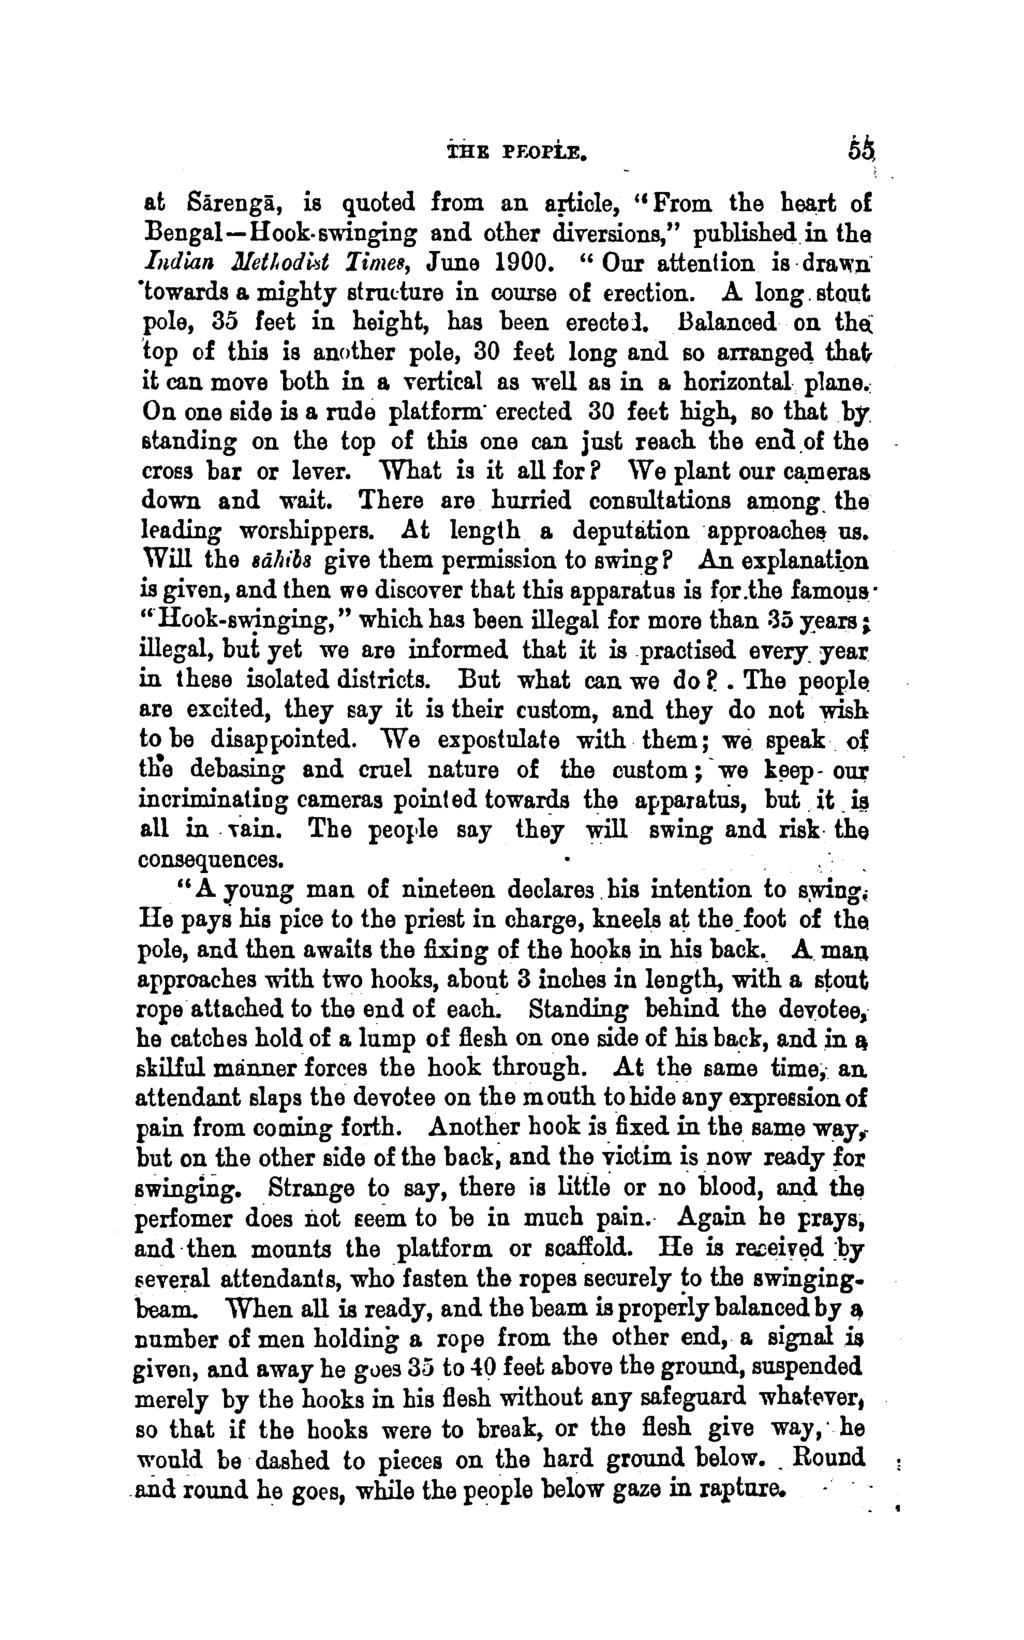 "THE l'f.ol'le. at Sarenga, is quoted from an aj""f;icle, "" From the heart of Bengal-Hook-swinging and other diversions,"" published in the Iitdian Jlet!.odi.st Times, June 1900."